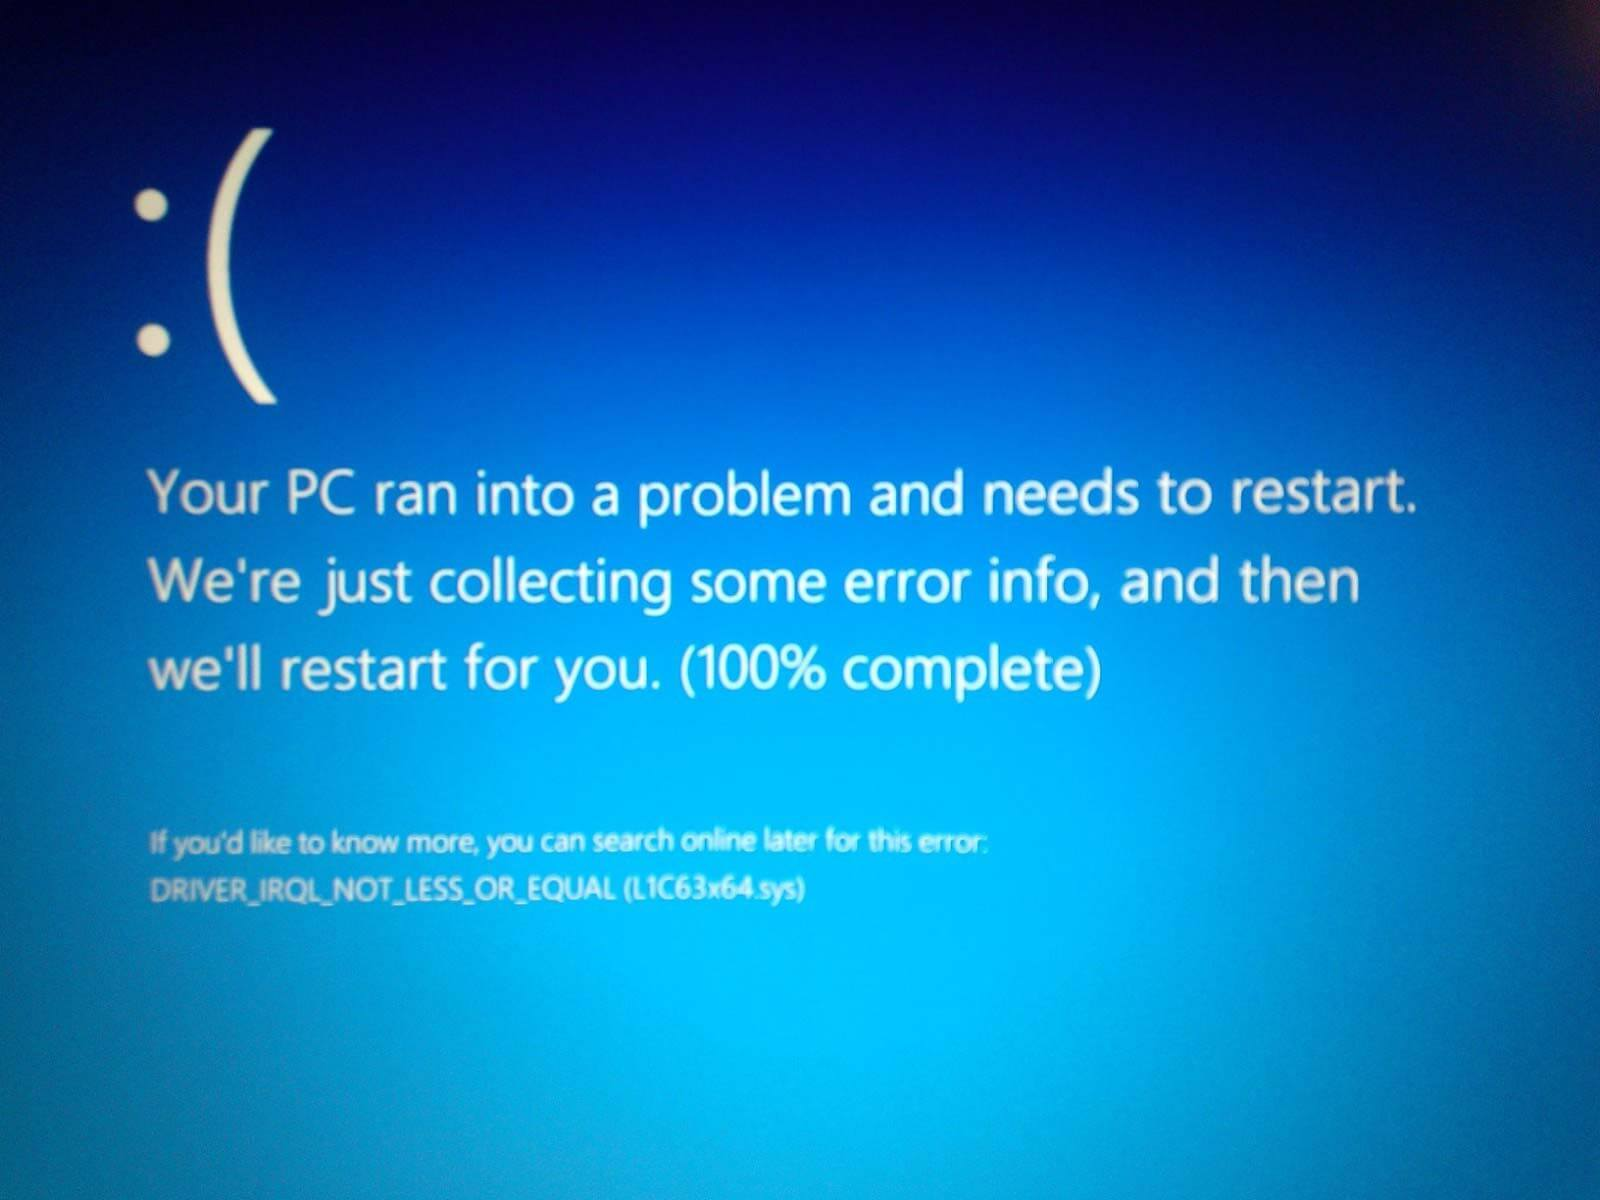 windows 10 error message